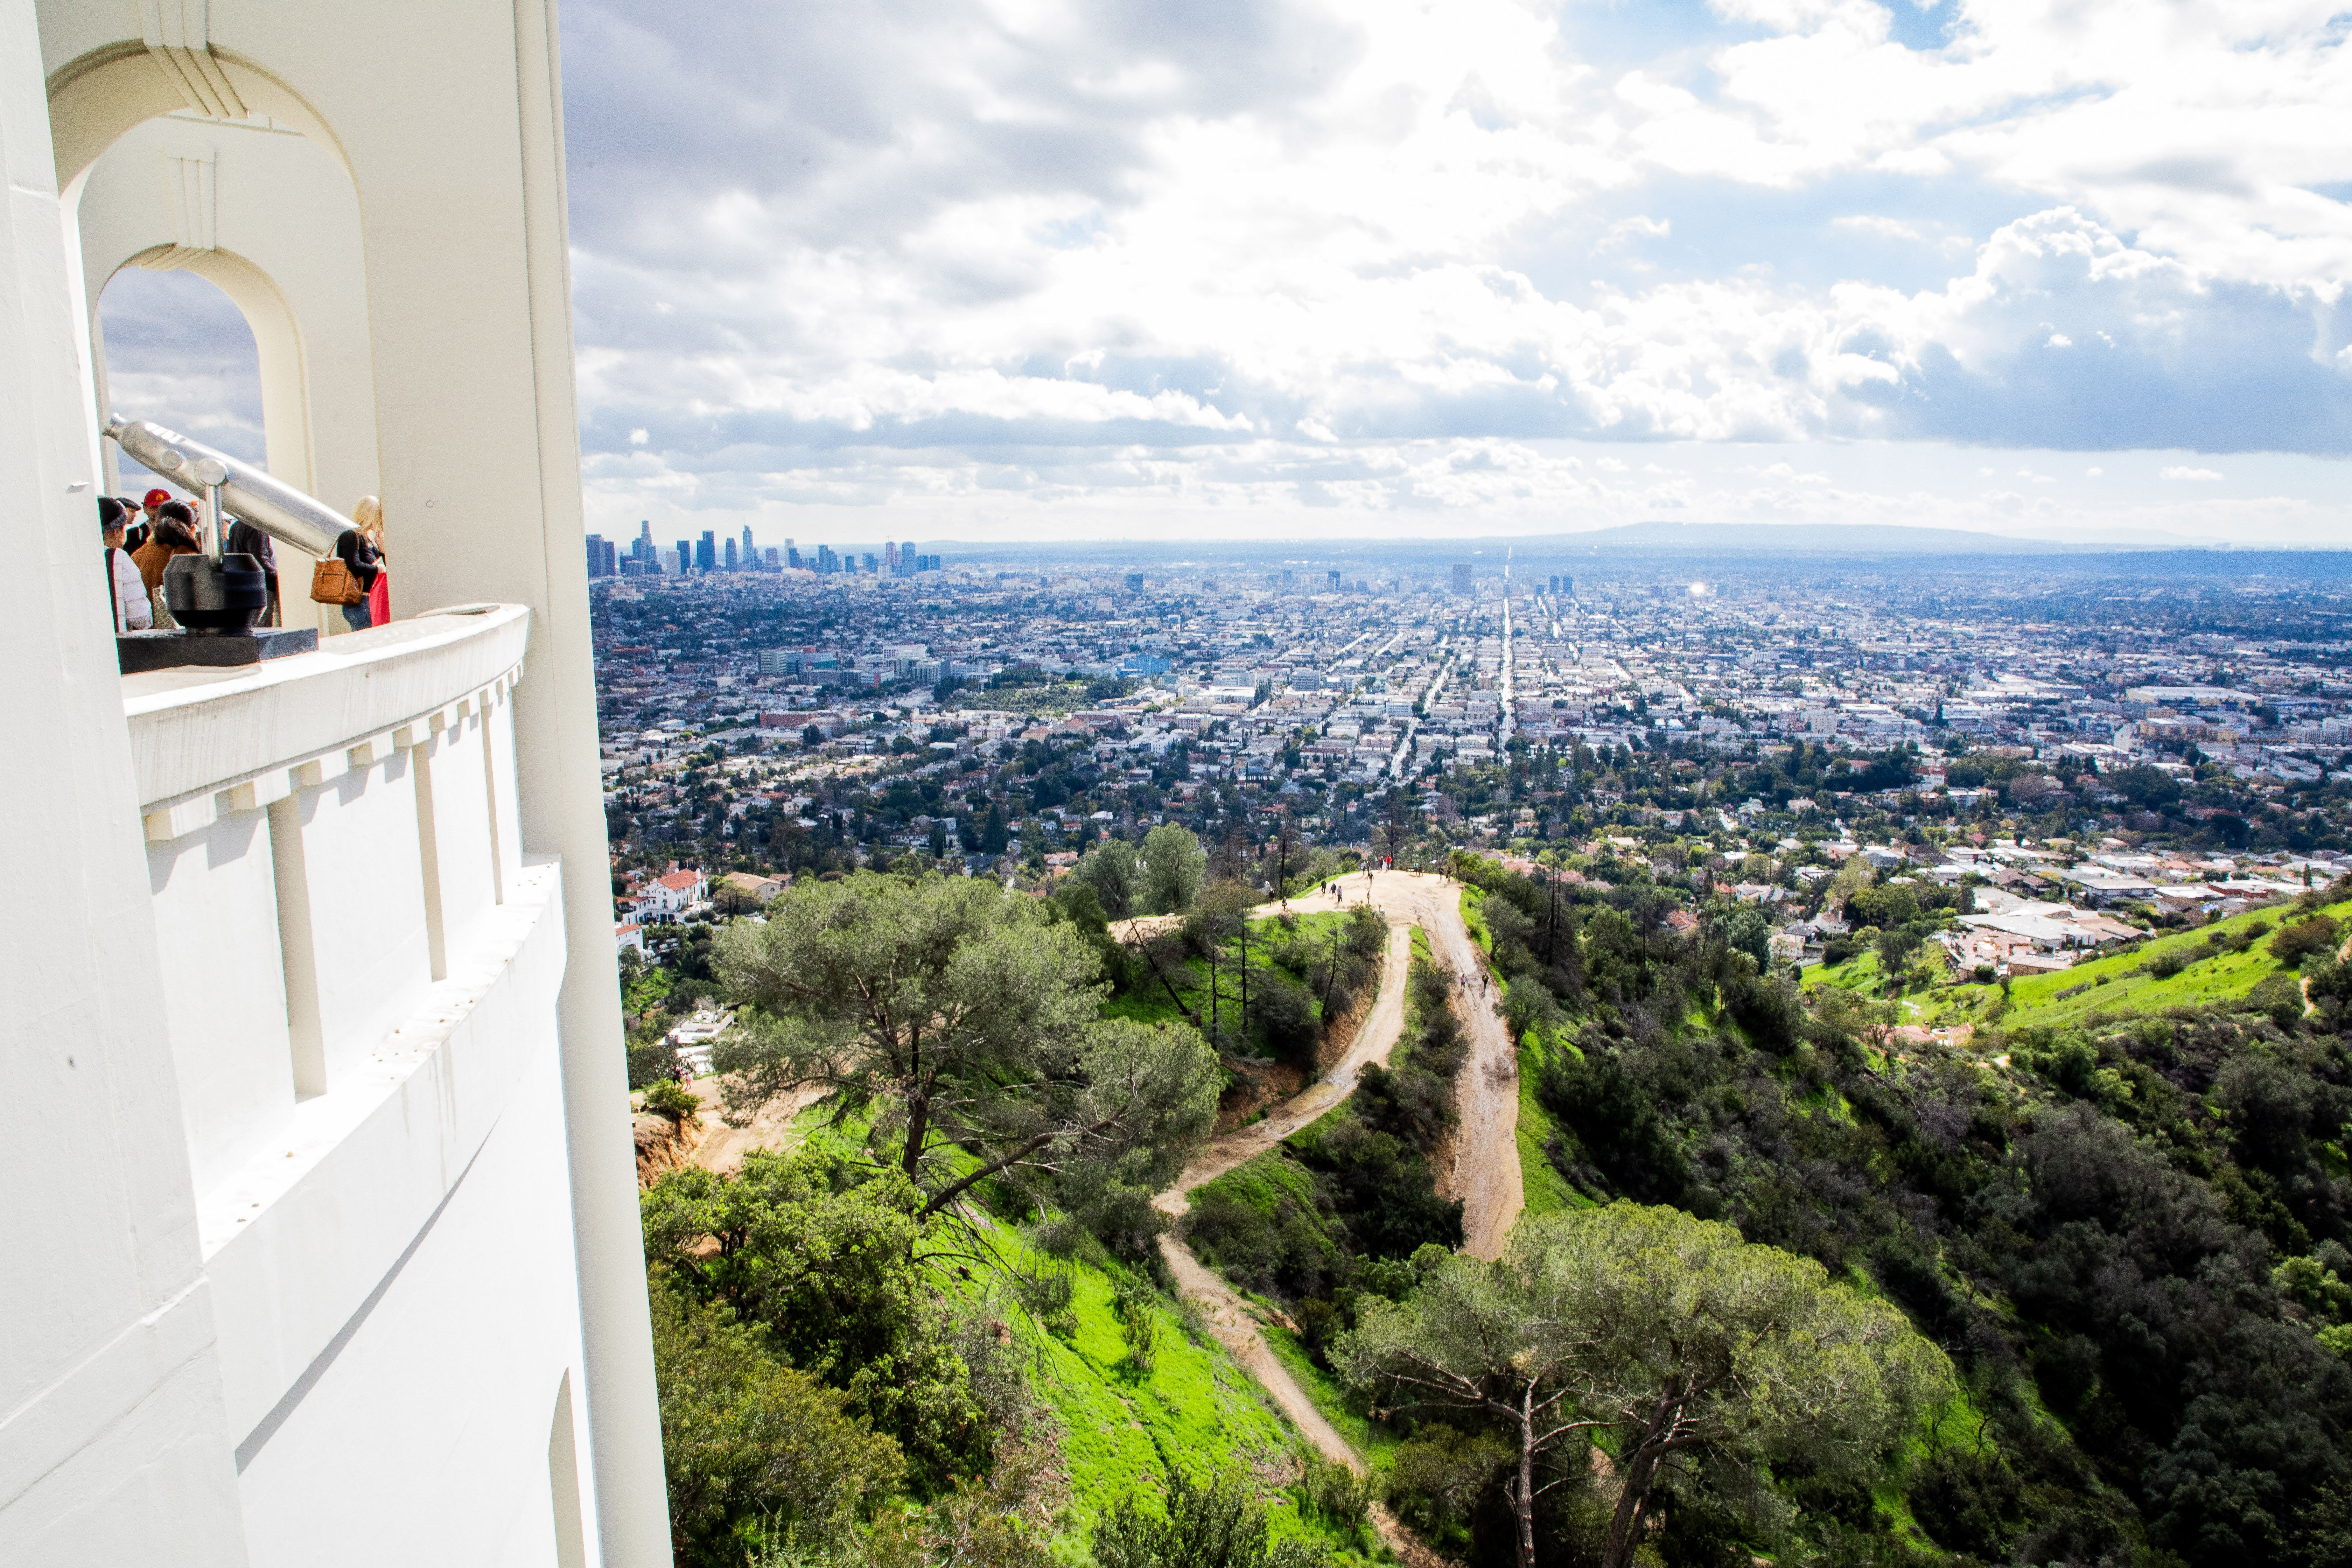 25 Free Things to Do in Los Angeles, California